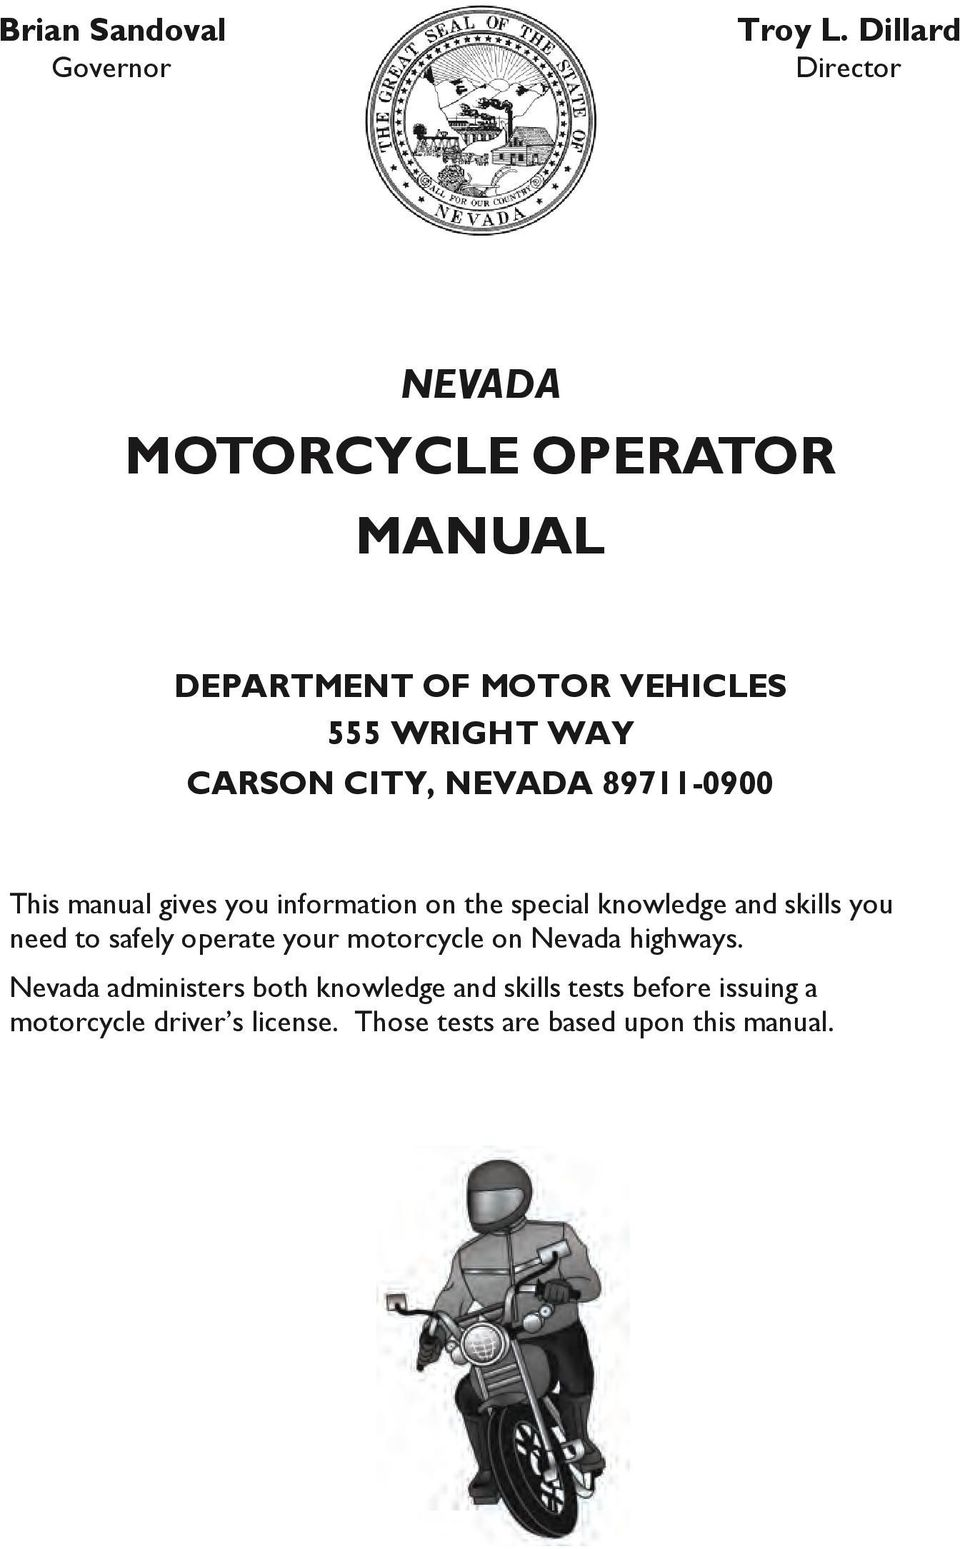 CITY, NEVADA 89711-0900 This manual gives you information on the special knowledge and skills you need to